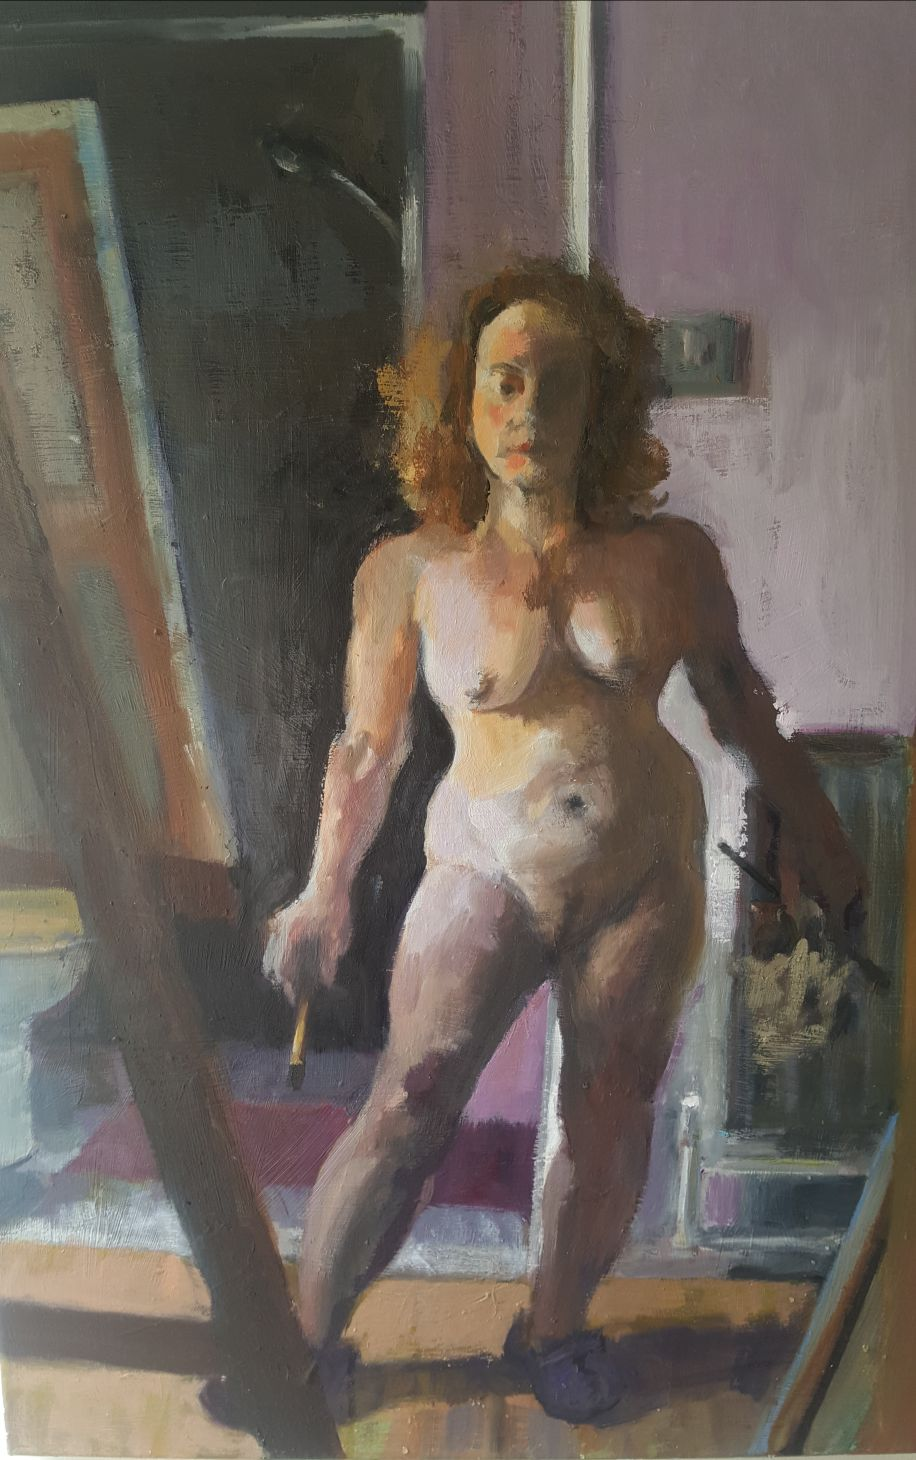 Nude Self portrait @ start of lockdown